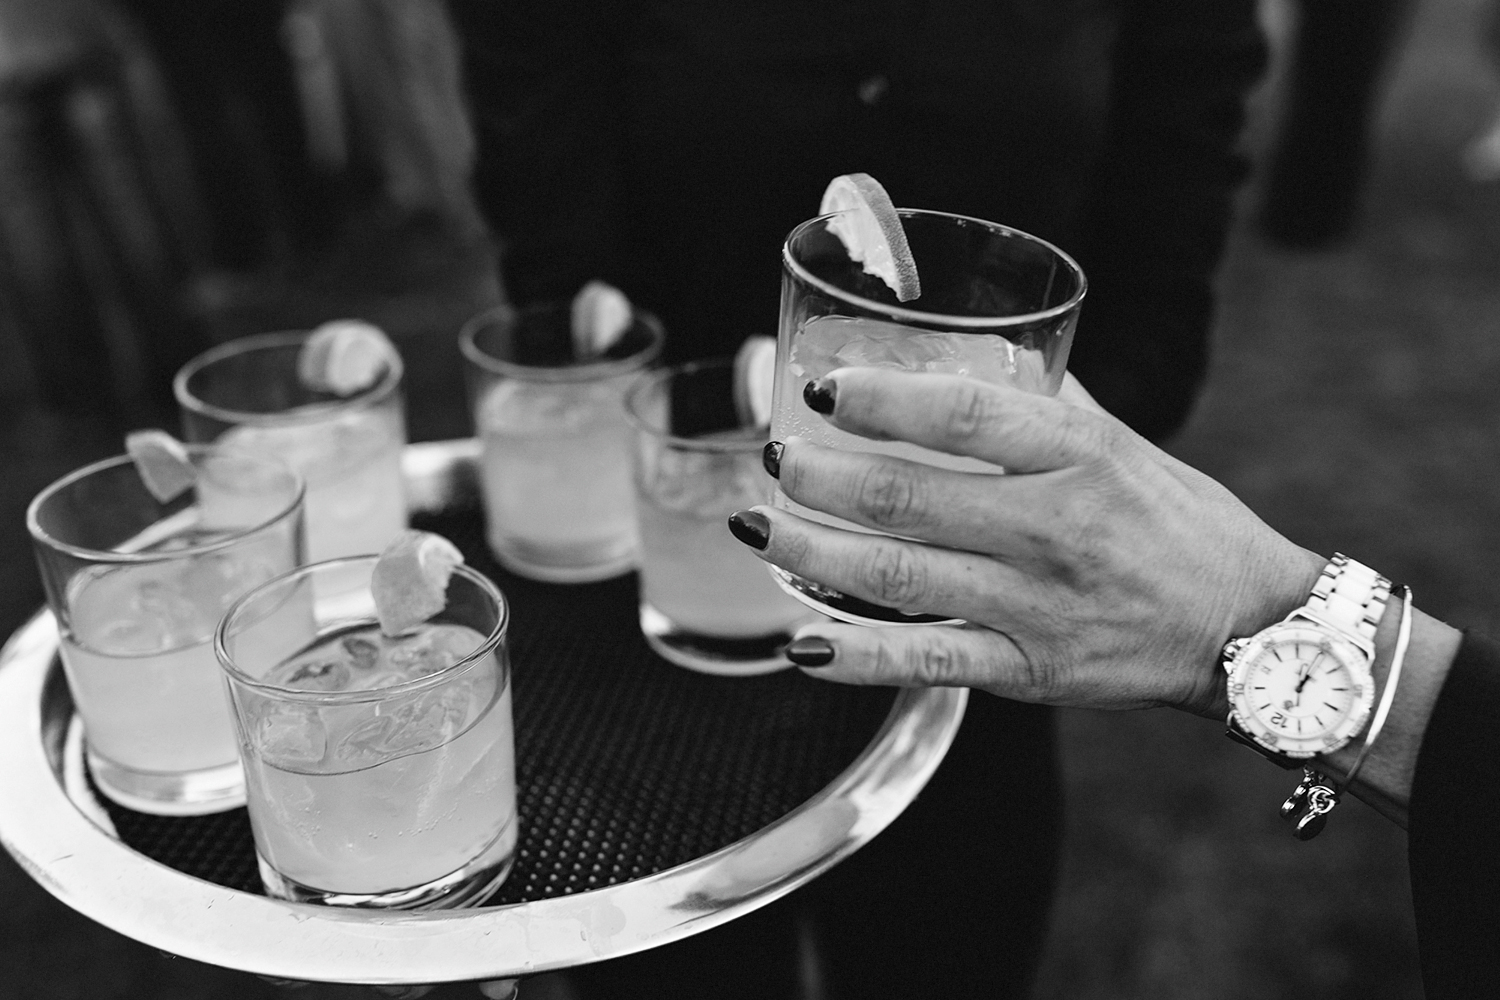 signature-cocktail-during-outdoor-cocktail-hour-At-Eganridge-Resort-Venue-Muskoka-Ontario-Wedding-Photography-by-Ryanne-Hollies-Photography-Toronto-Documentary-Wedding-Photographer.jpg